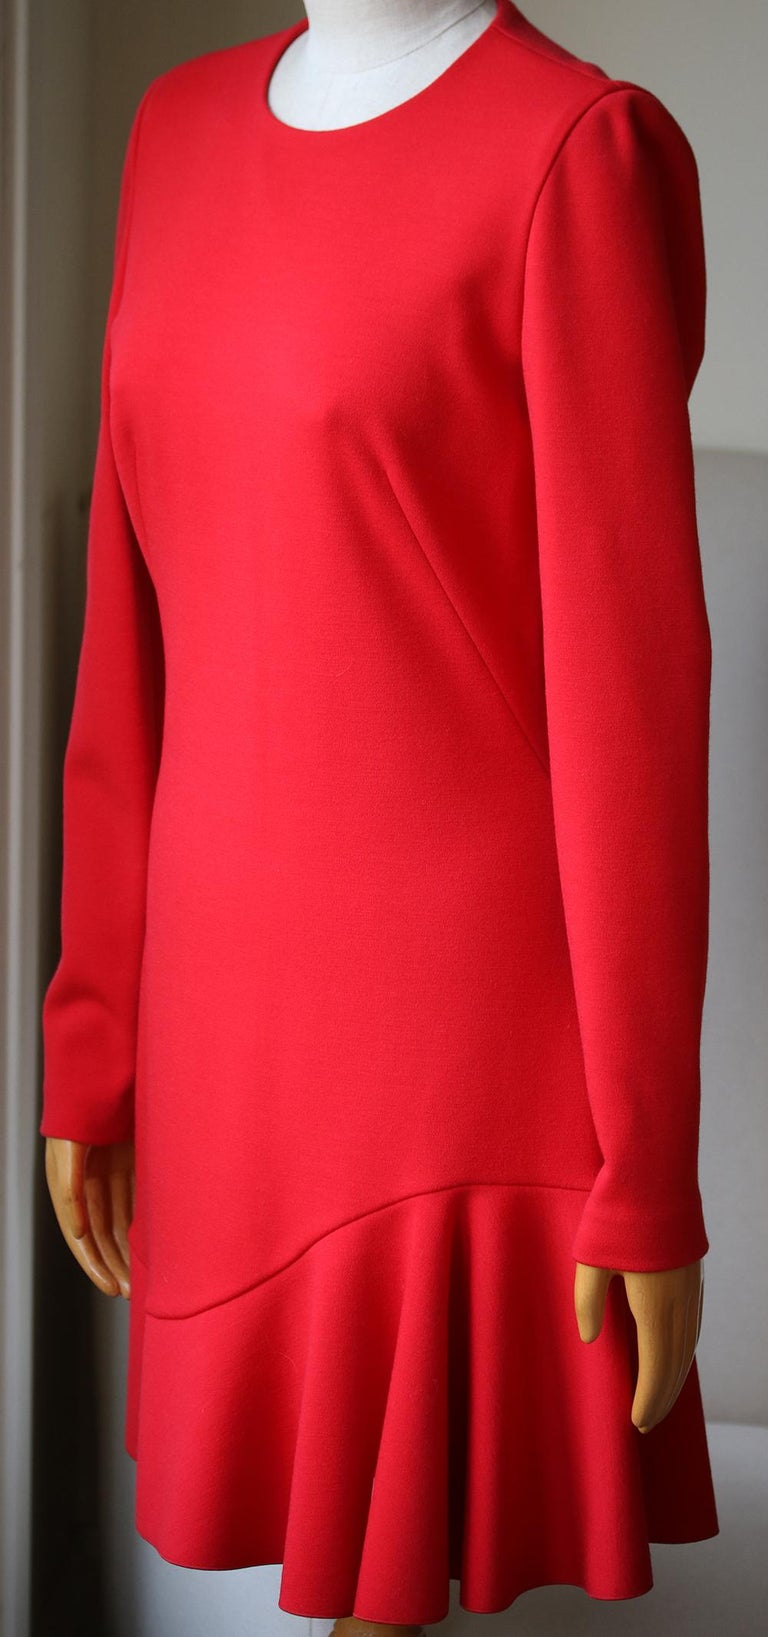 Knitted, lightweight jumper, solid colour, round collar, long sleeves, no appliqués, no pockets, rear closure, zip closure, stretch, dress. 95% Virgin Wool, 5% Elastane. Colour: red.  Size: IT 44 (UK 12, US 8, FR 40)  Condition: As new condition, no